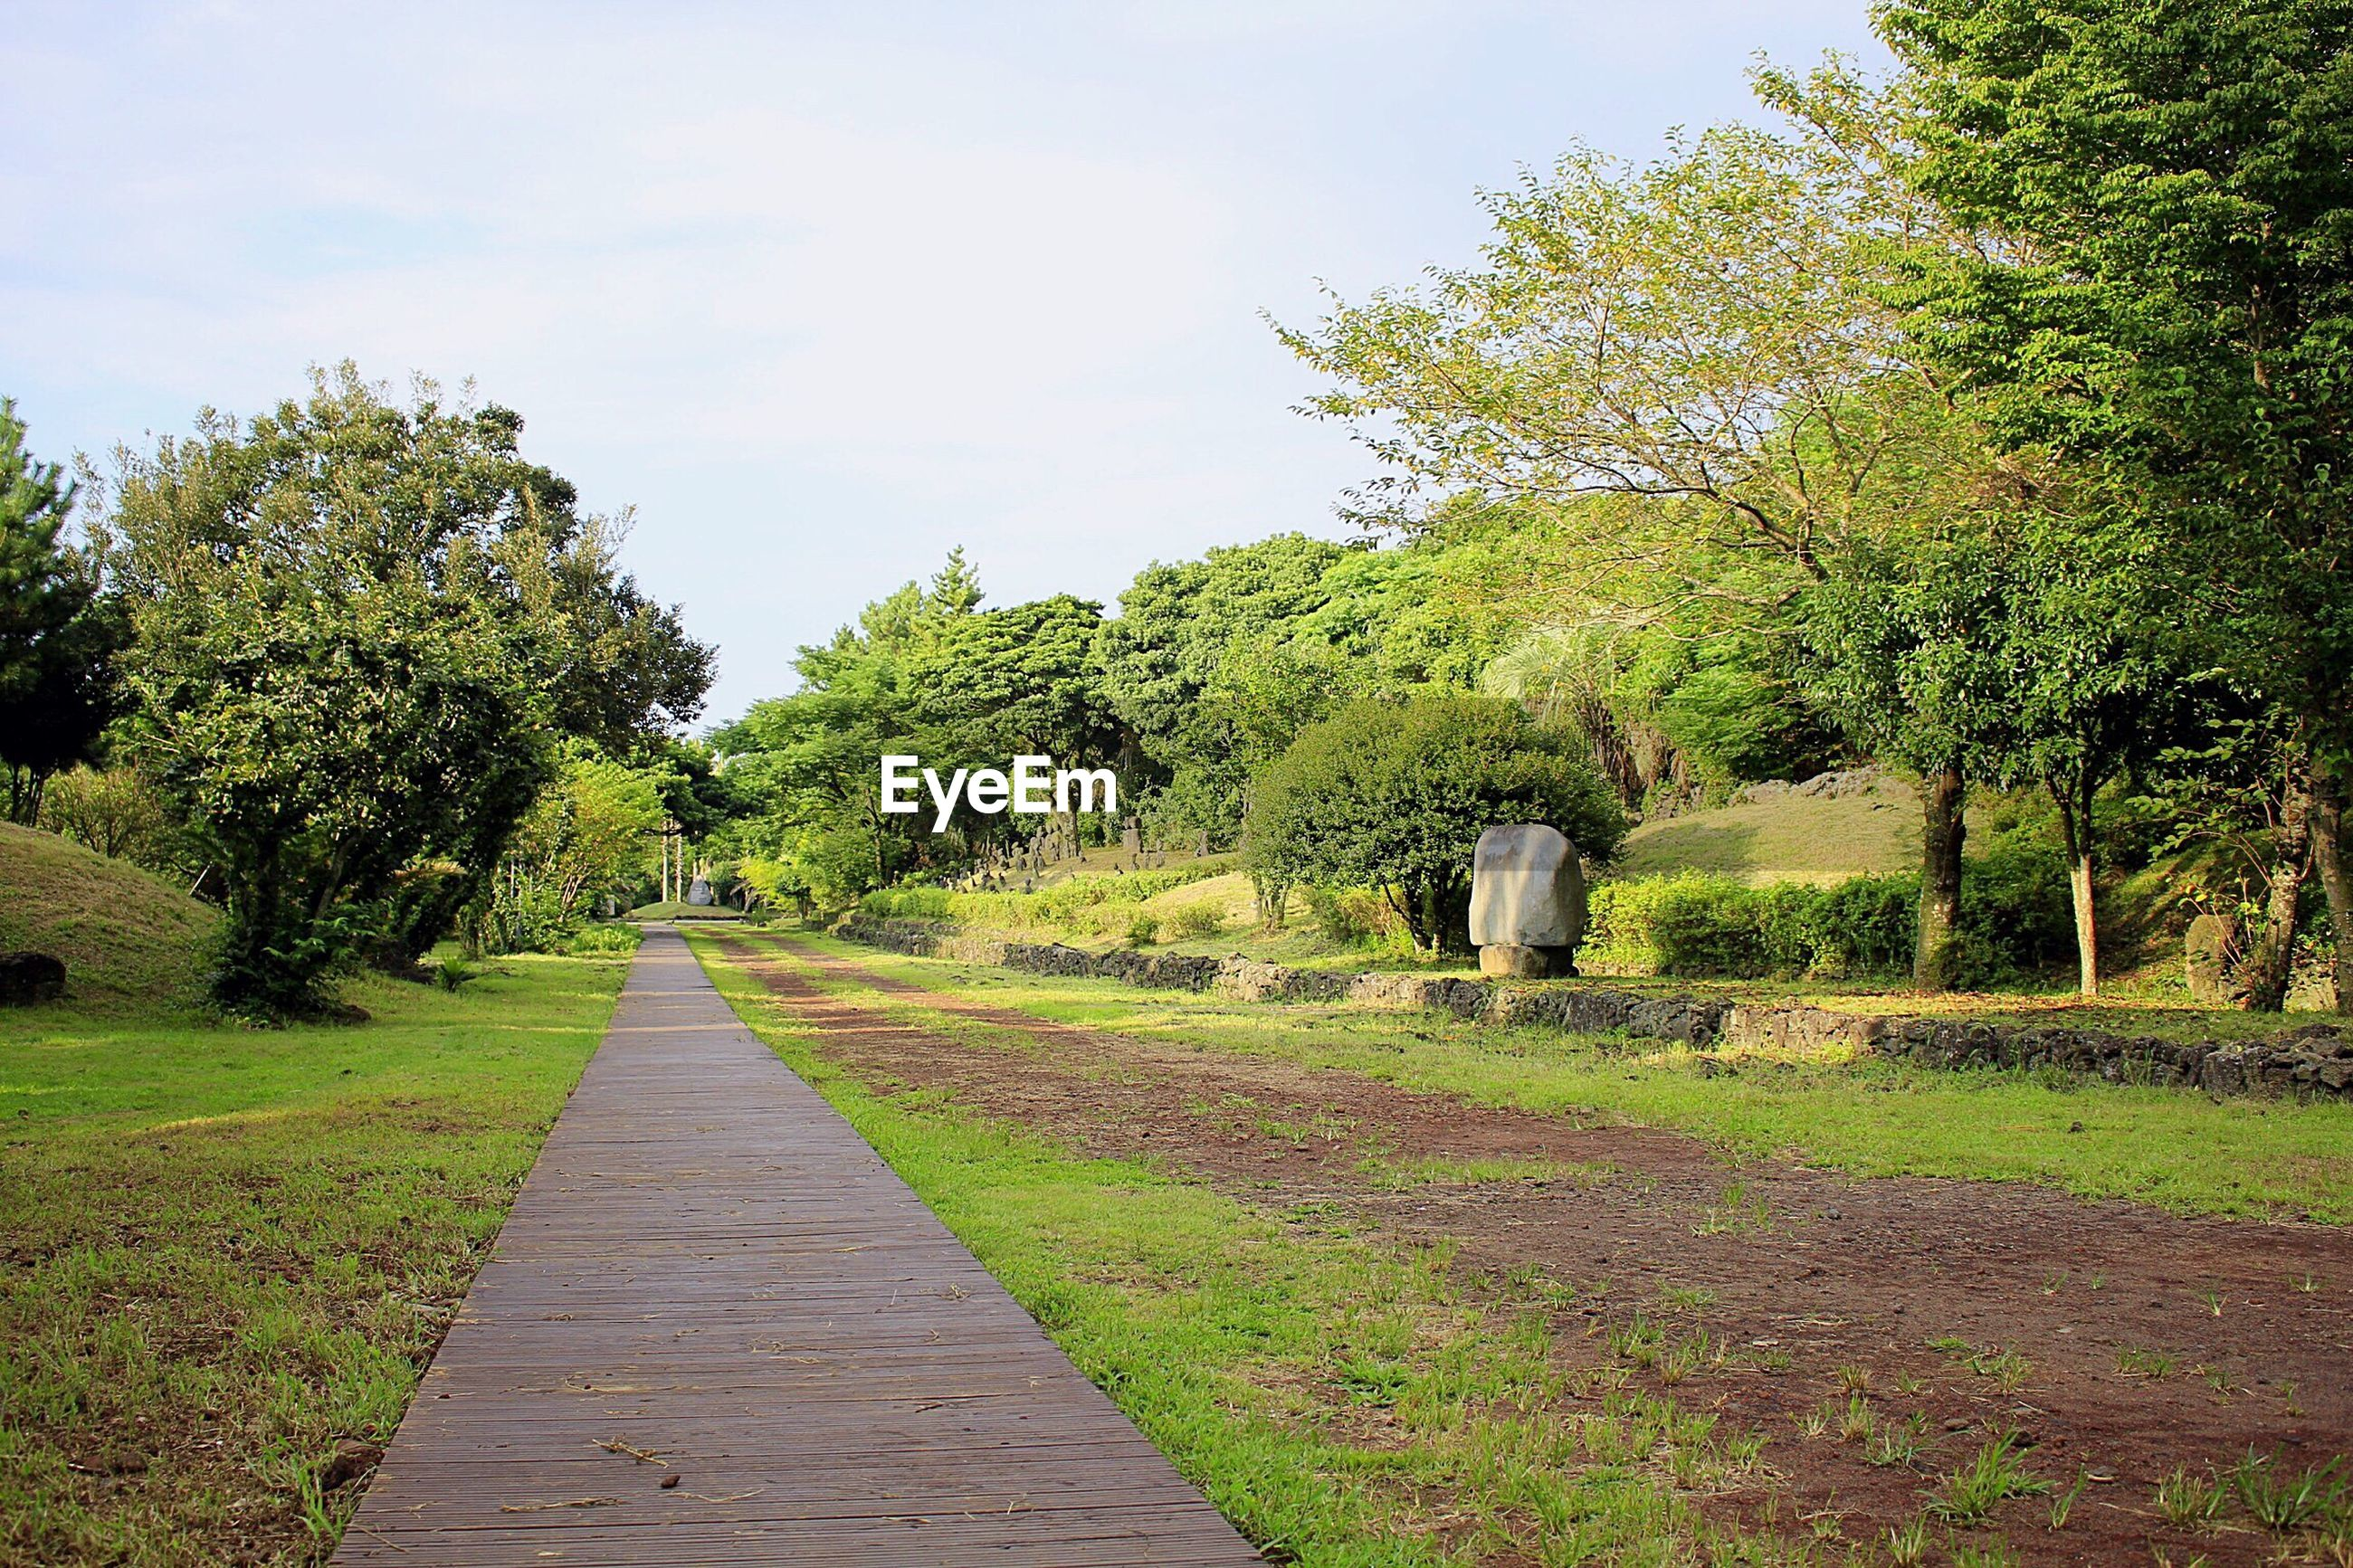 tree, the way forward, grass, growth, pathway, tranquil scene, tranquility, diminishing perspective, footpath, narrow, long, walkway, plant, green color, day, nature, treelined, park - man made space, sky, scenics, outdoors, branch, solitude, beauty in nature, pedestrian walkway, green, park, surface level, non-urban scene, vanishing point